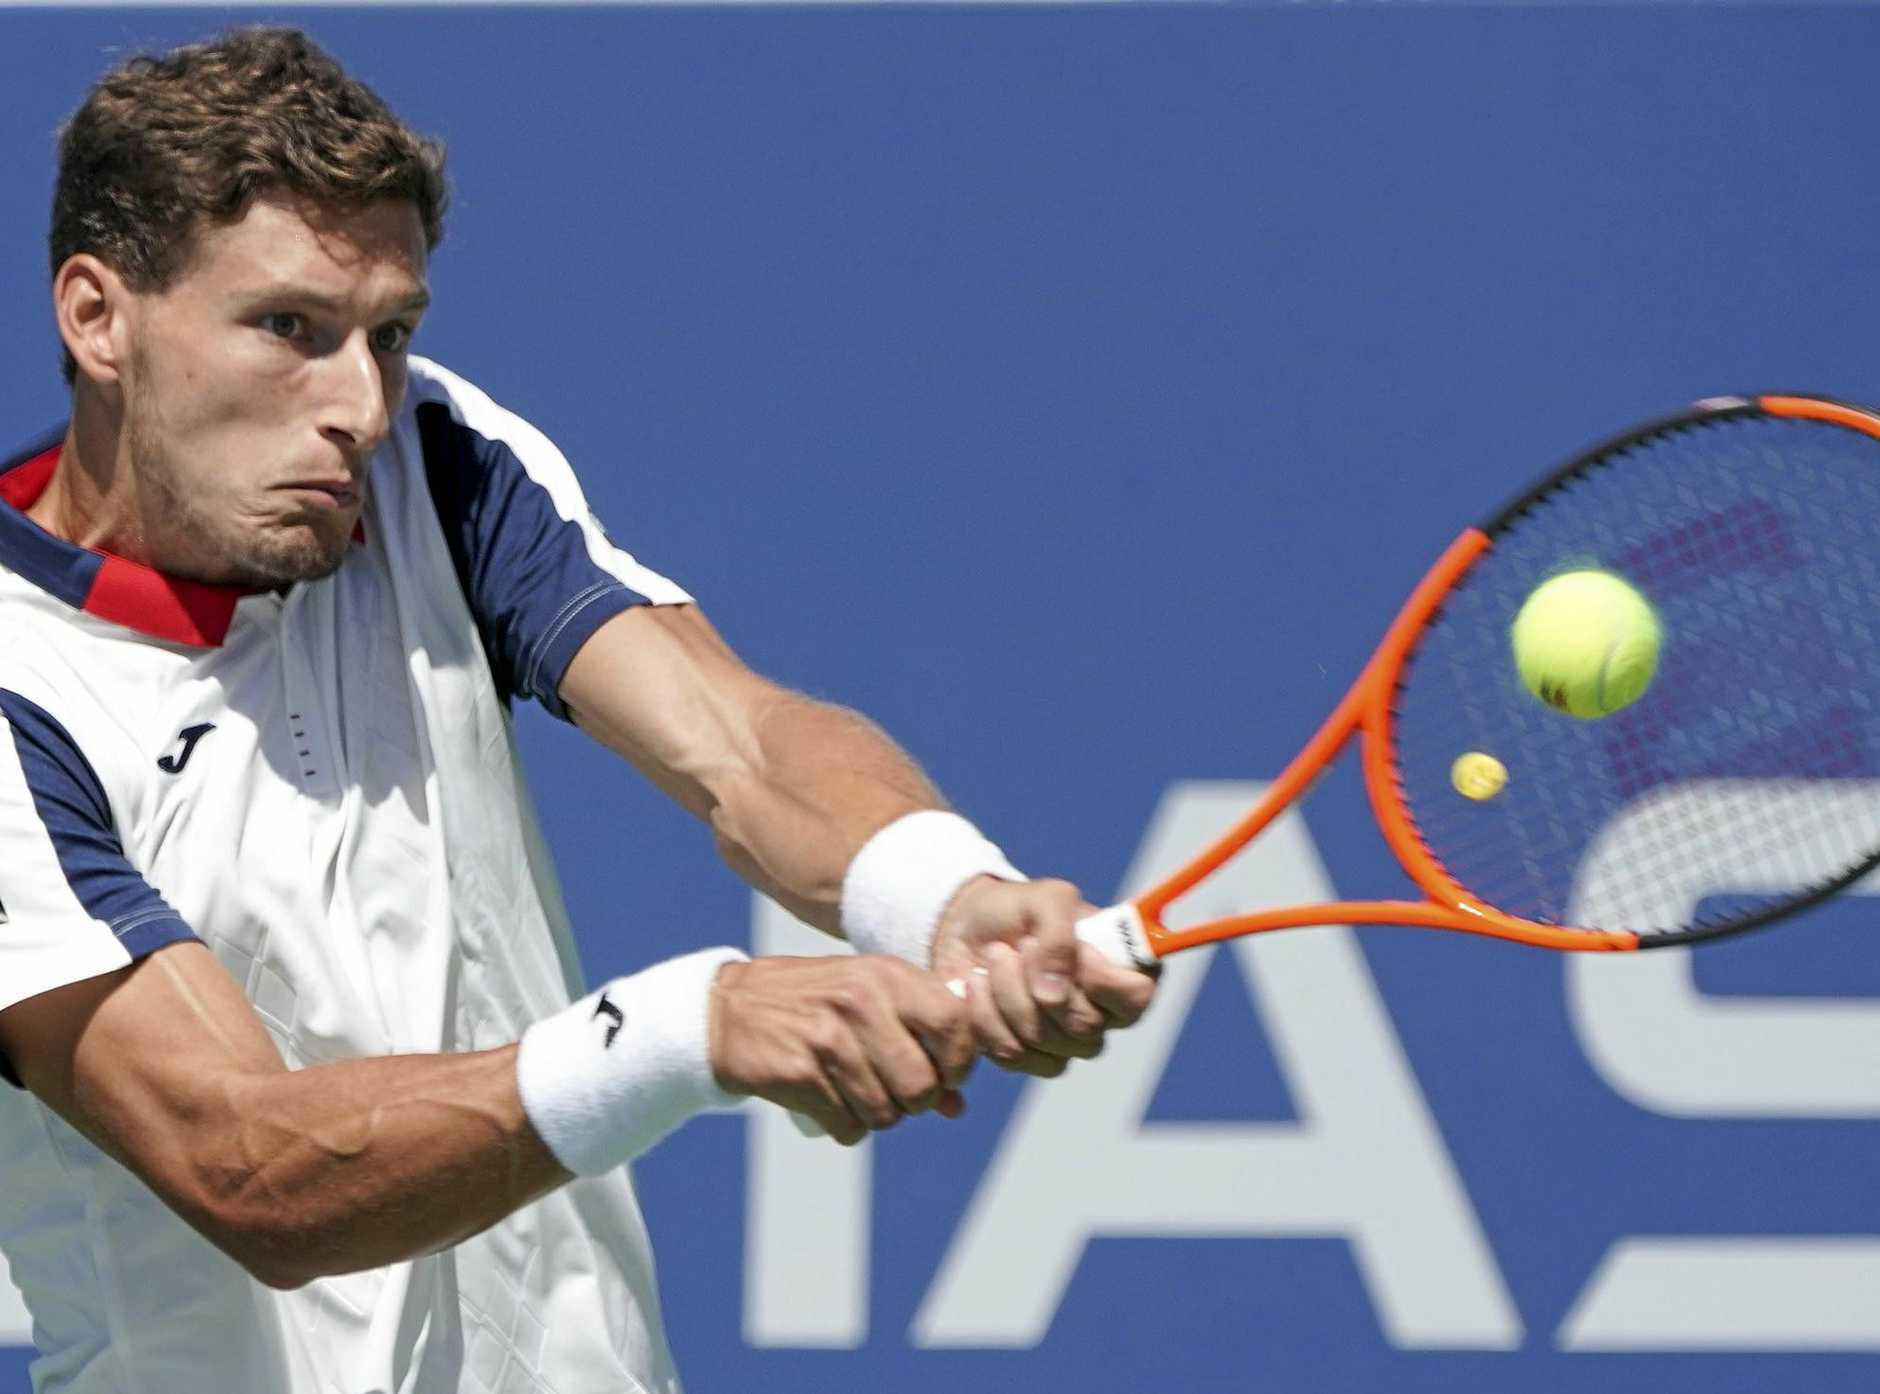 Pablo Carrena Busta is in the US Open semi-finals.